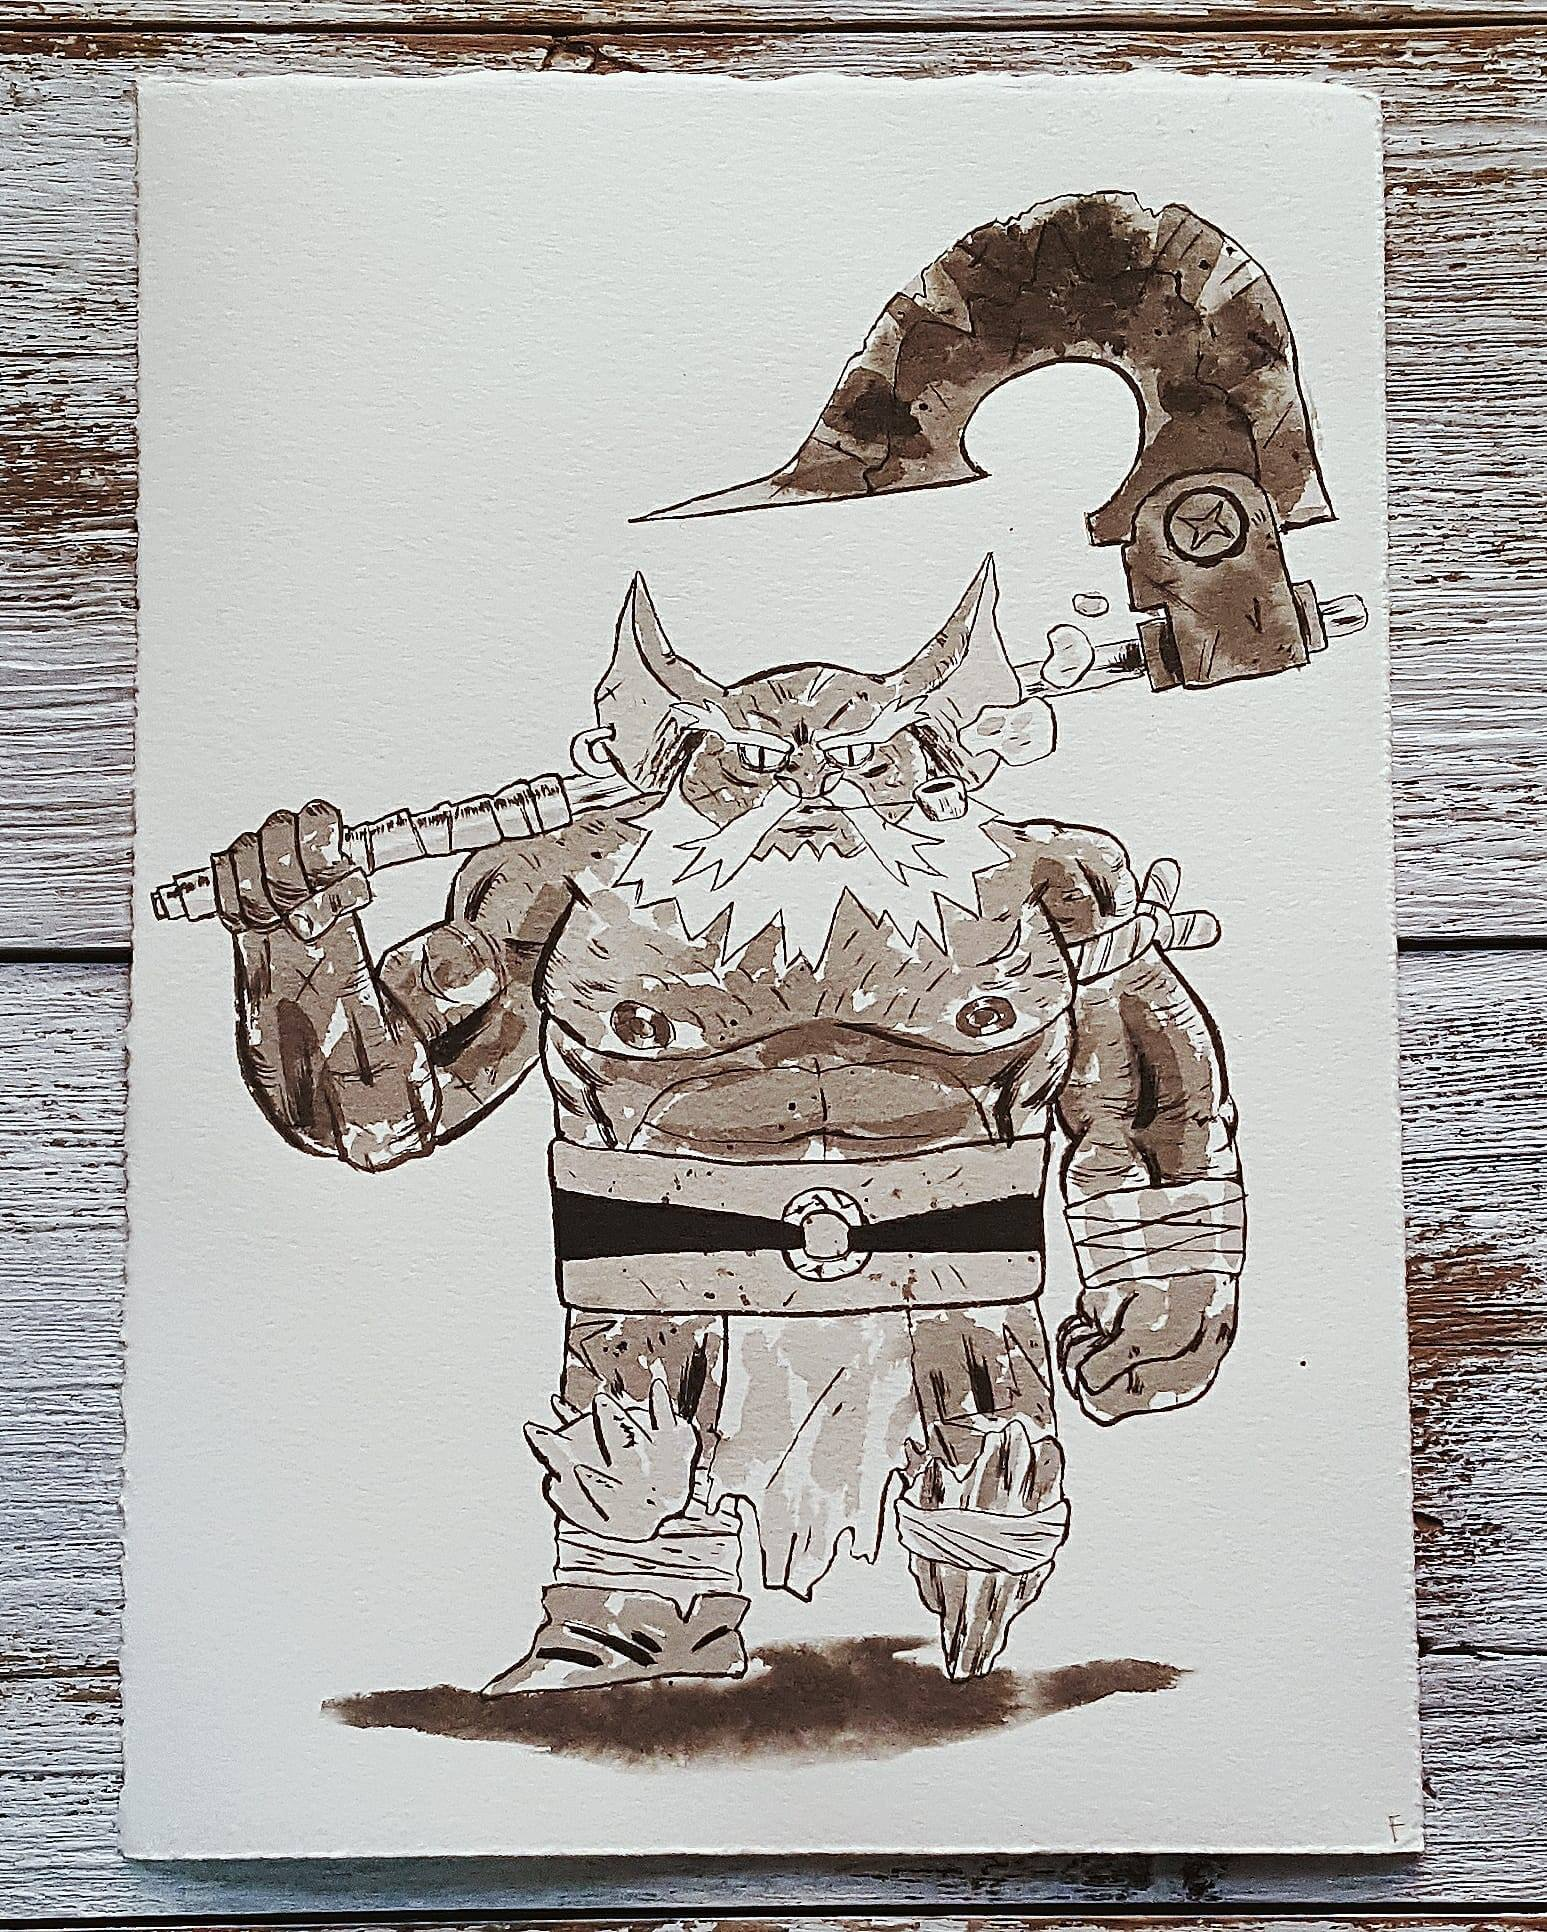 A Knight a Day No. 14, Givuk the Brute - He rose quickly through the ranks of the goblin army to become a commanding officer. A solid wall of muscle and anger that will drive a path through even the thickest of enemy lines. He's so brazen that he wears little more than trousers and boots into battle, wielding his giant war axe.